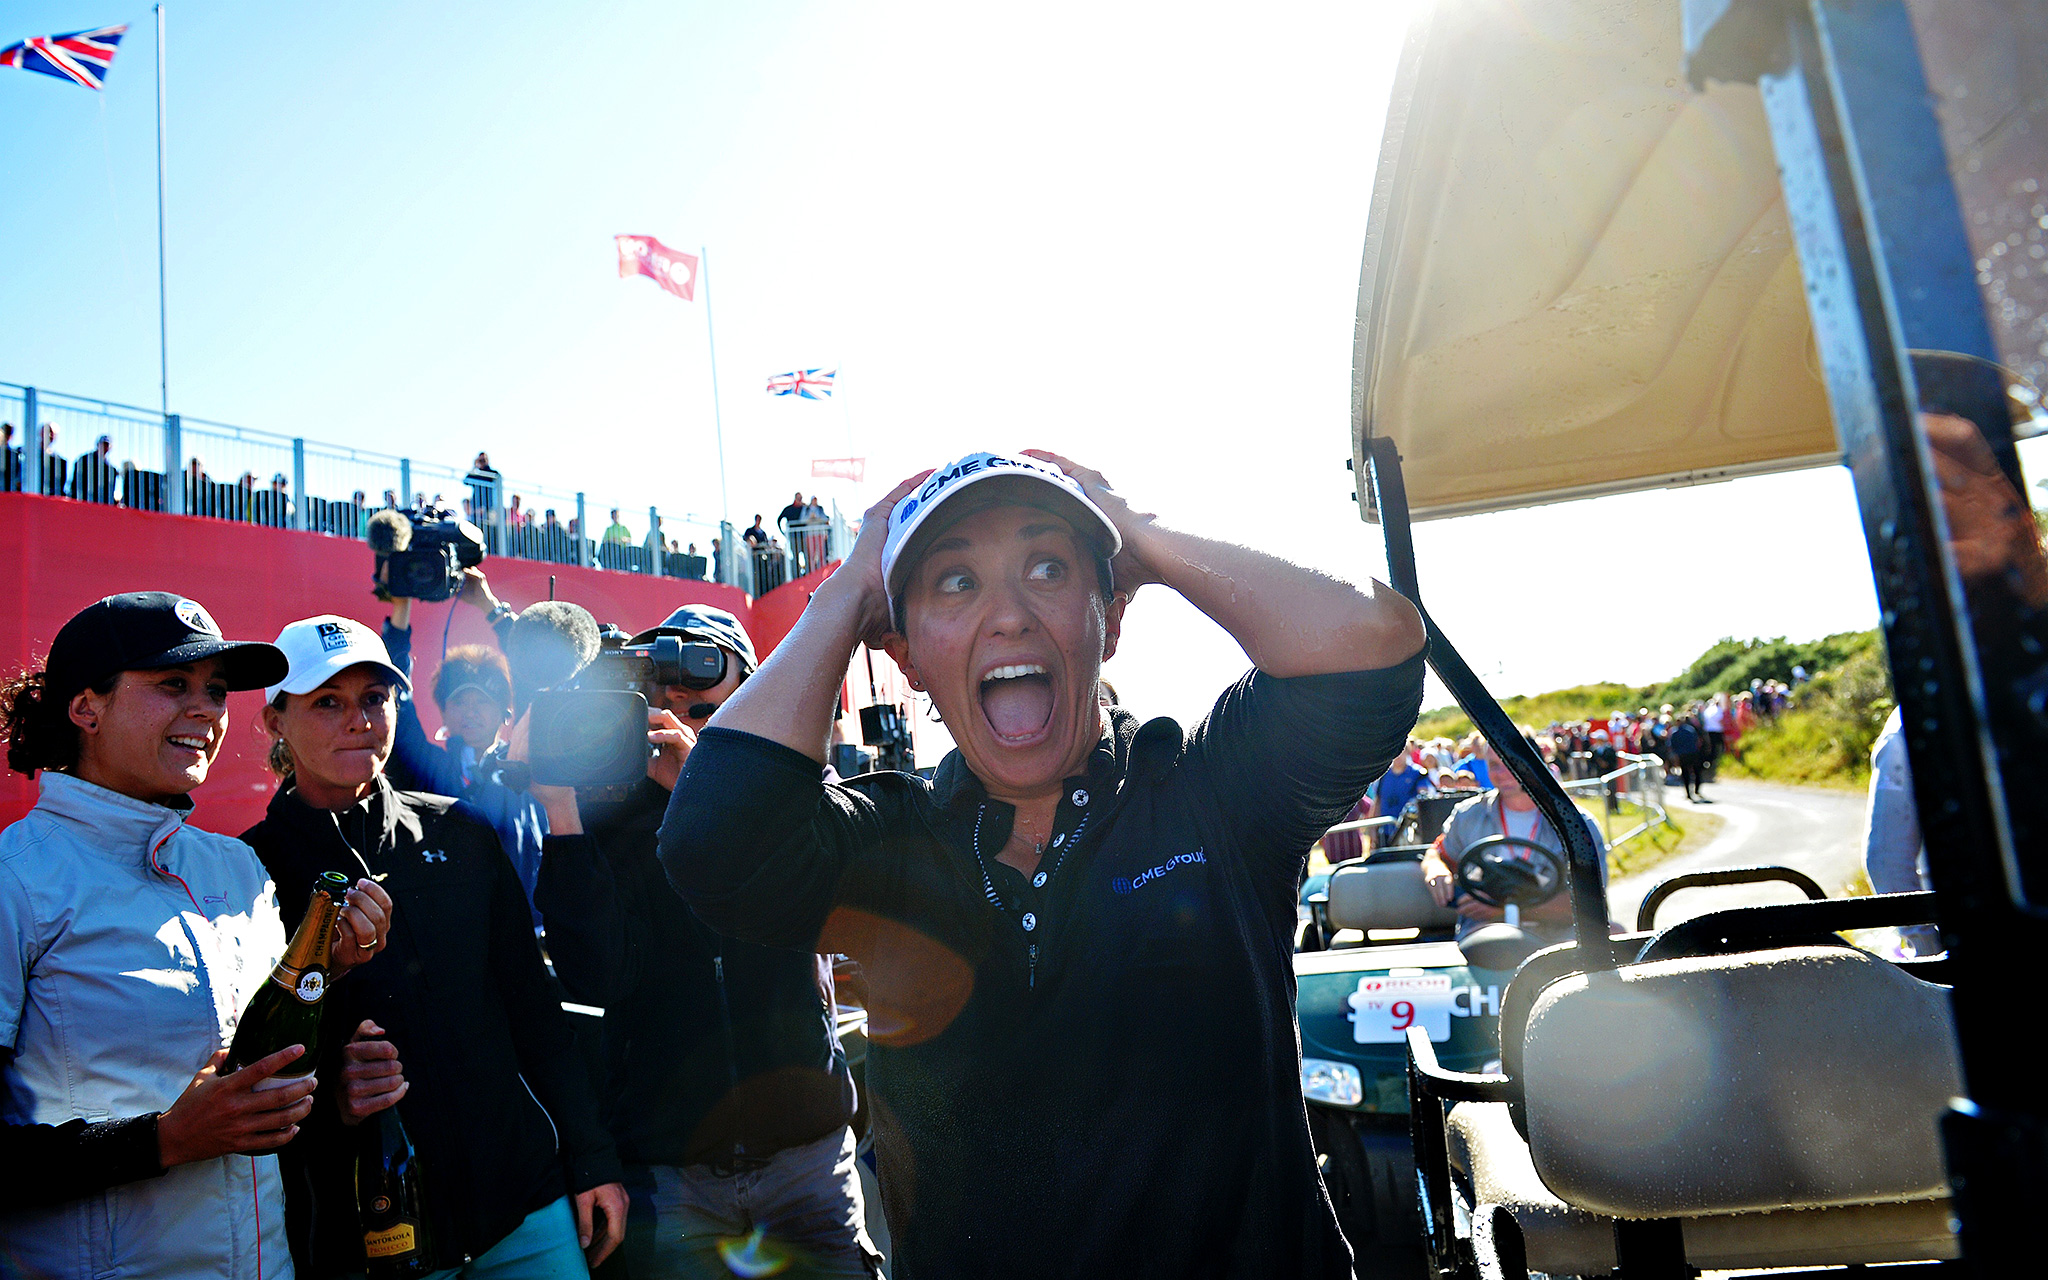 Mo Martin reacts after winning the Women's British Open at Royal Birkdale golf course. Mo Martin arrived in England as a little-known American but left as golf's newest major champion after a one-shot triumph.